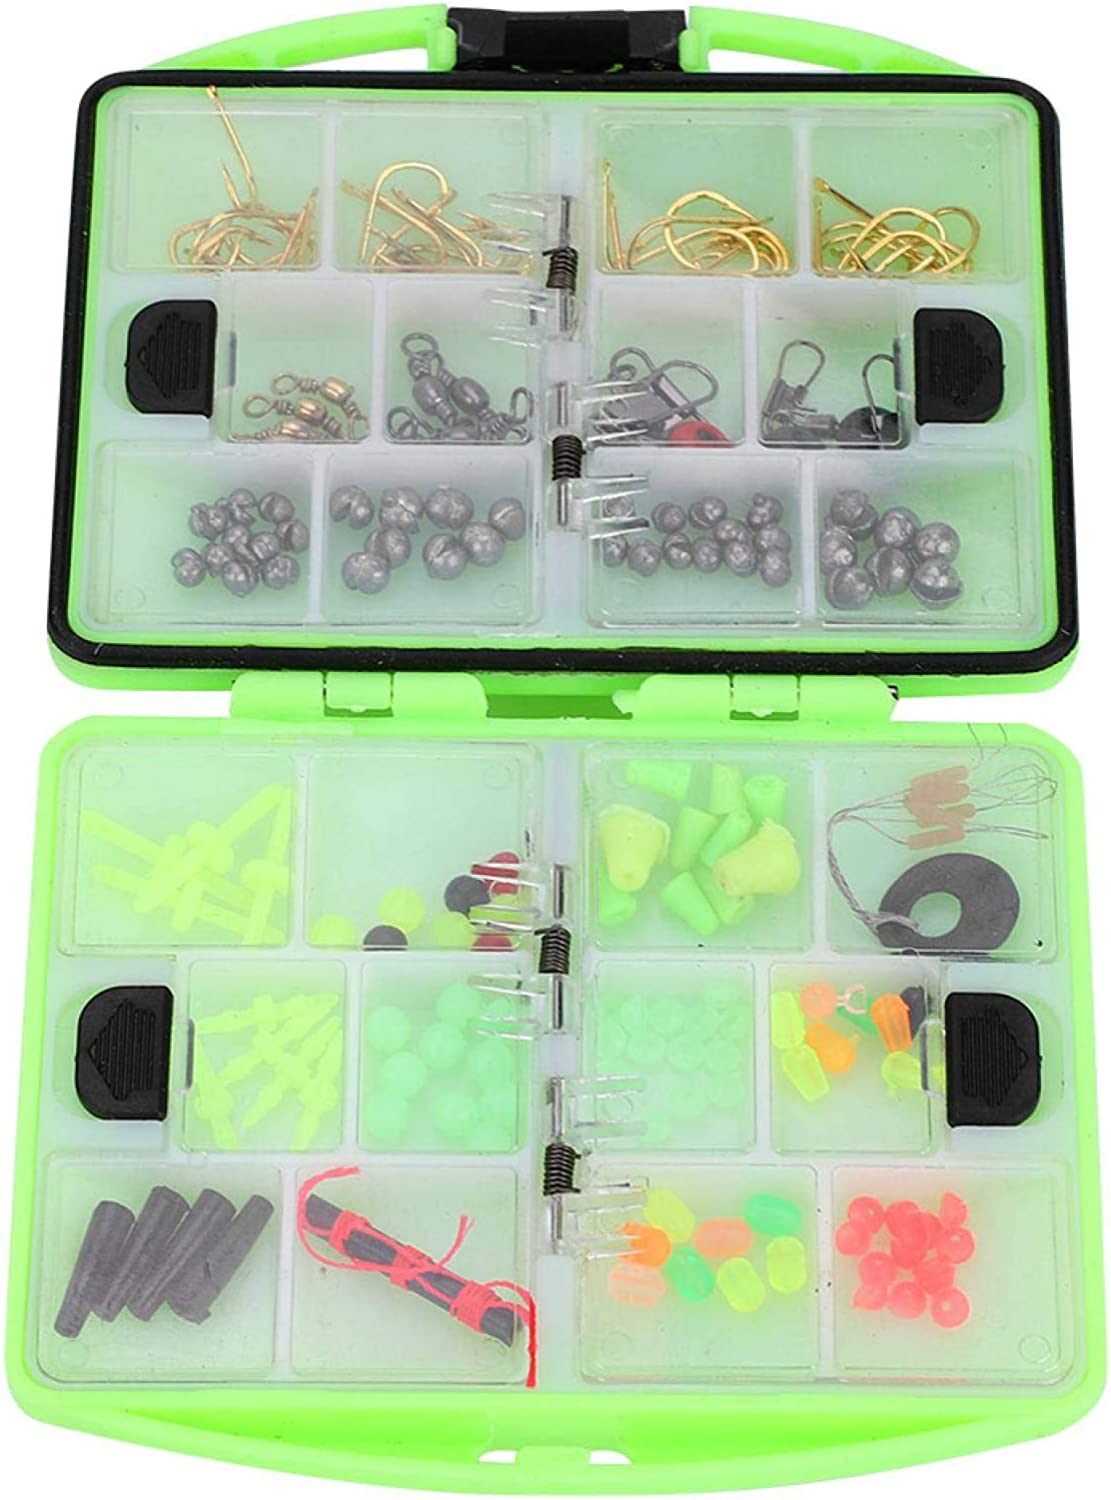 PBOHUZ Fishing Accessories 202Pcs Portable lowest Max 66% OFF price Box Rock Acce